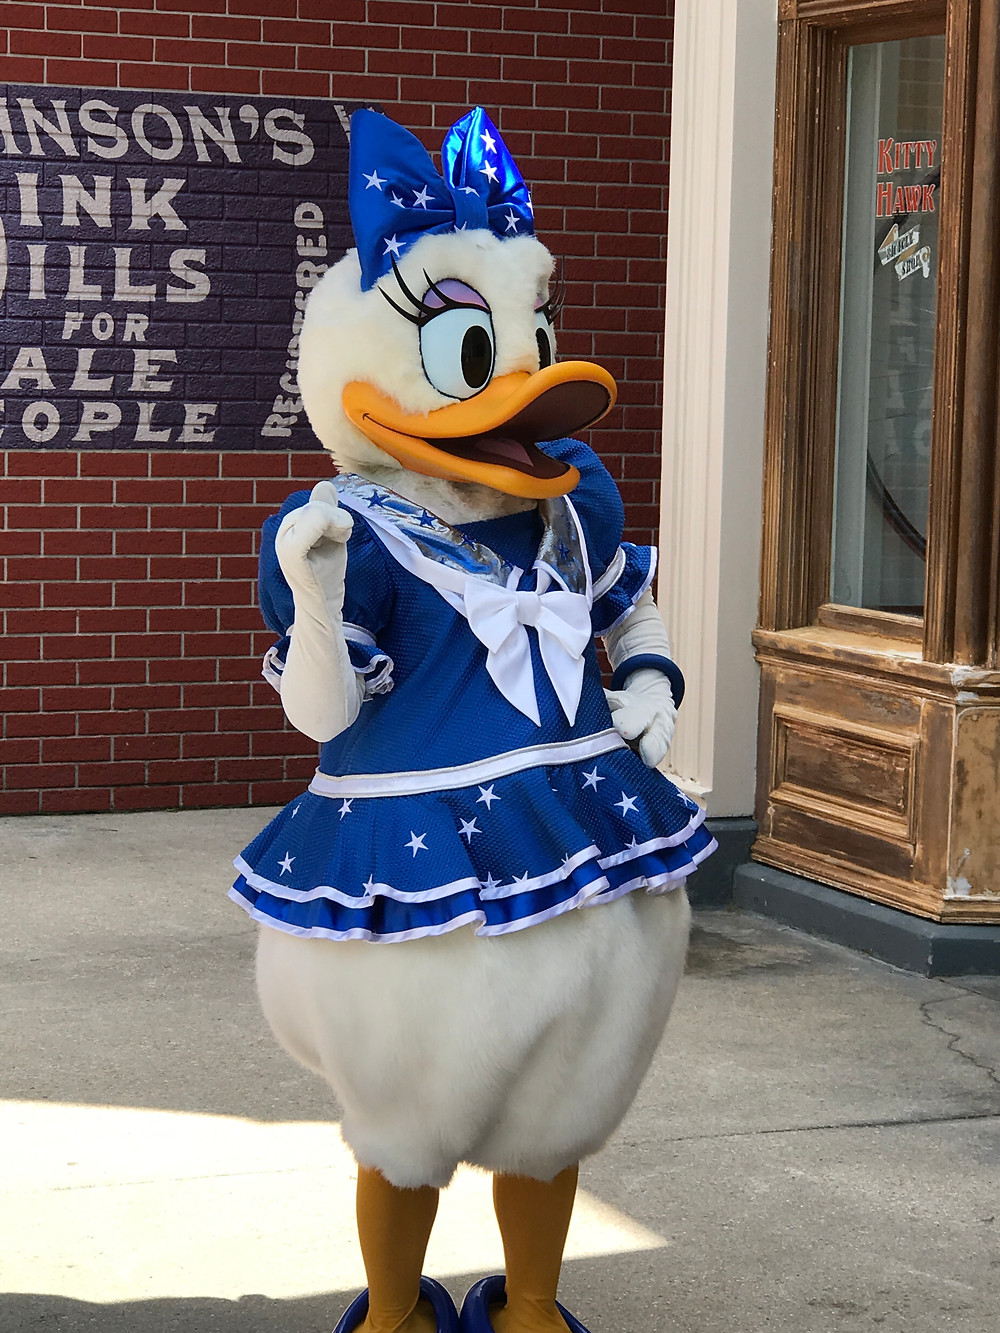 Daisy in her 25th anniversary outfit